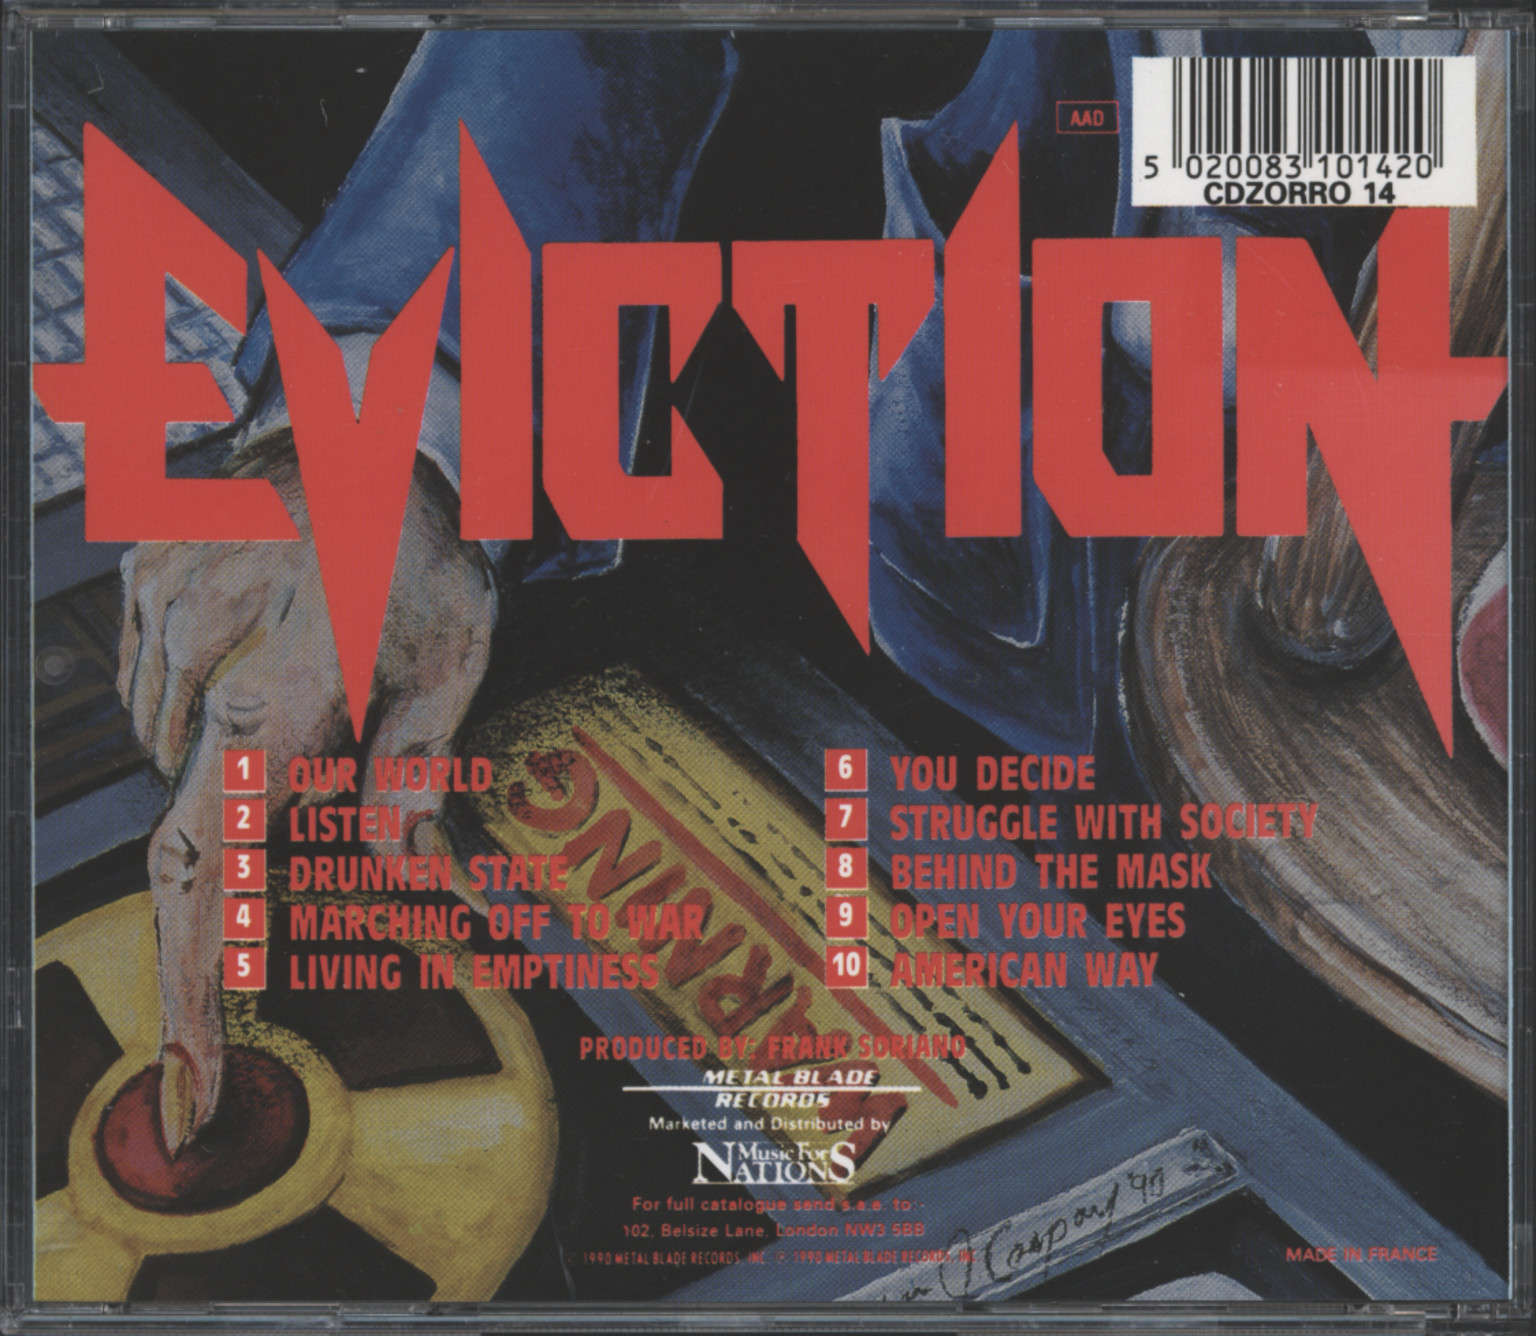 Eviction: The World Is Hours Away, CD